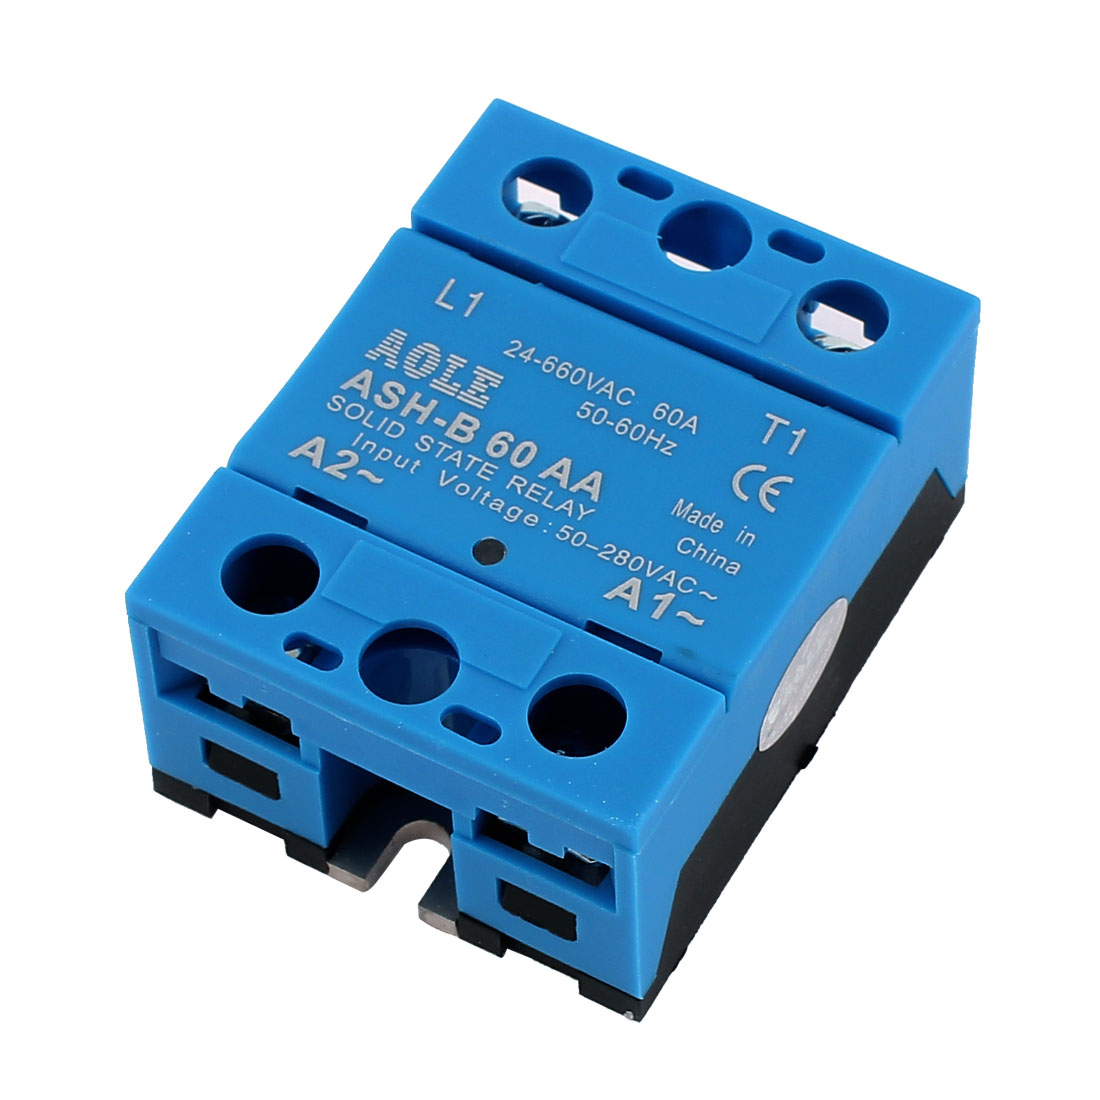 ASH-B60AA 50-280VAC to 480VAC 60A Single Phase Solid State Relay AC to AC Relay